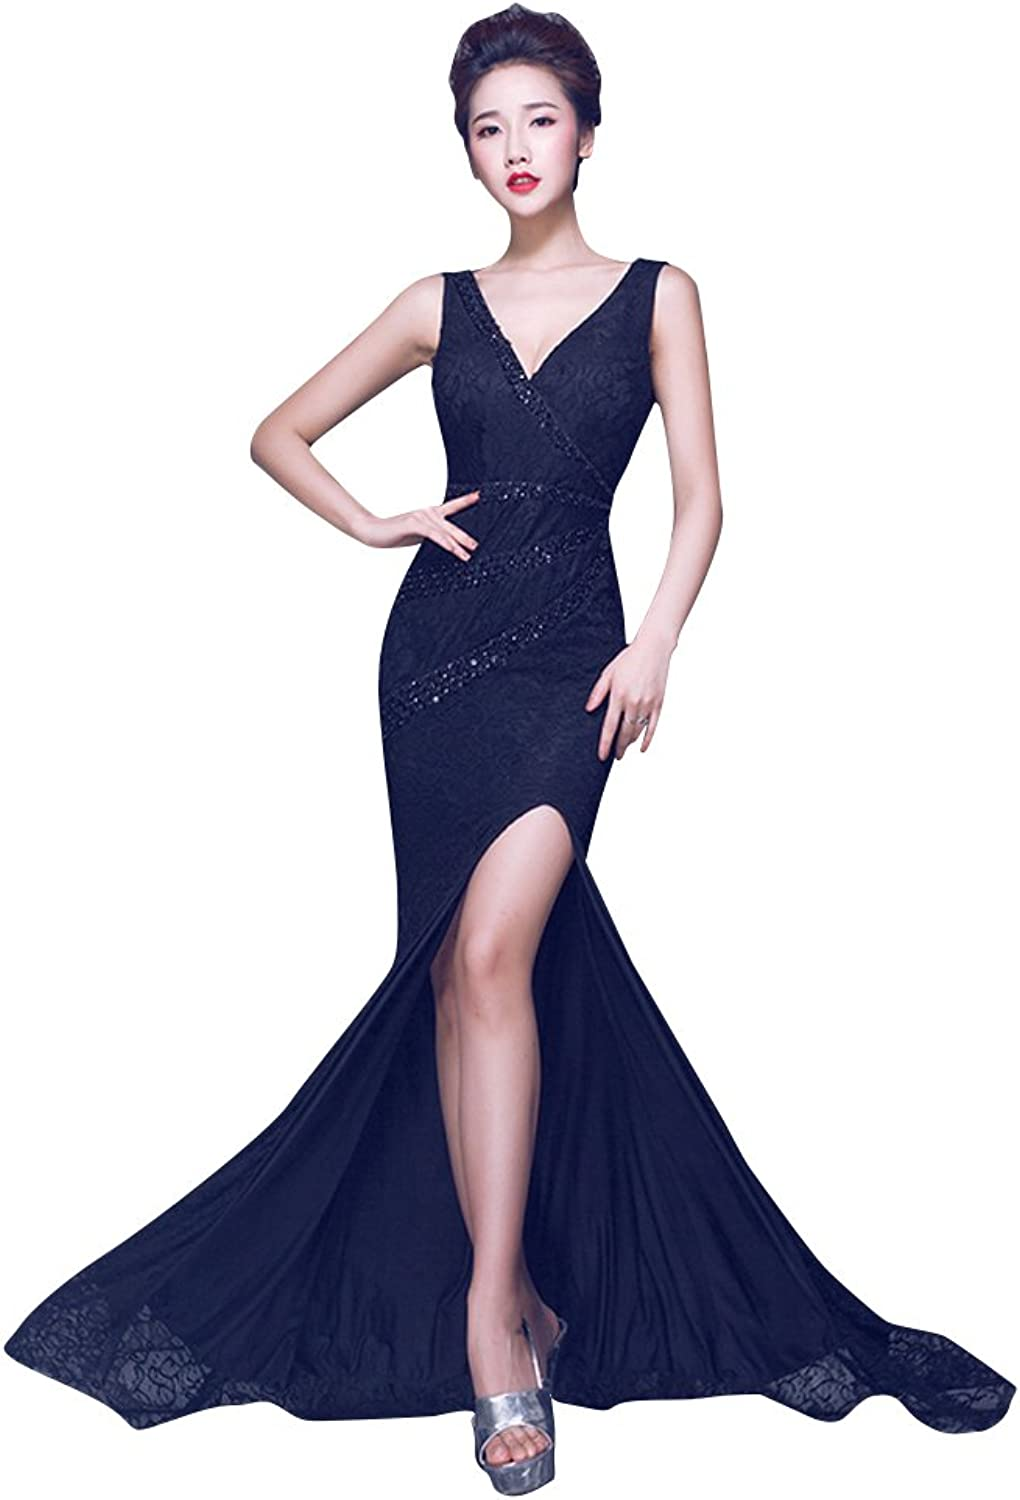 BeautyEmily Open Side Bodycon Lace Backless VNeck Evening Dress